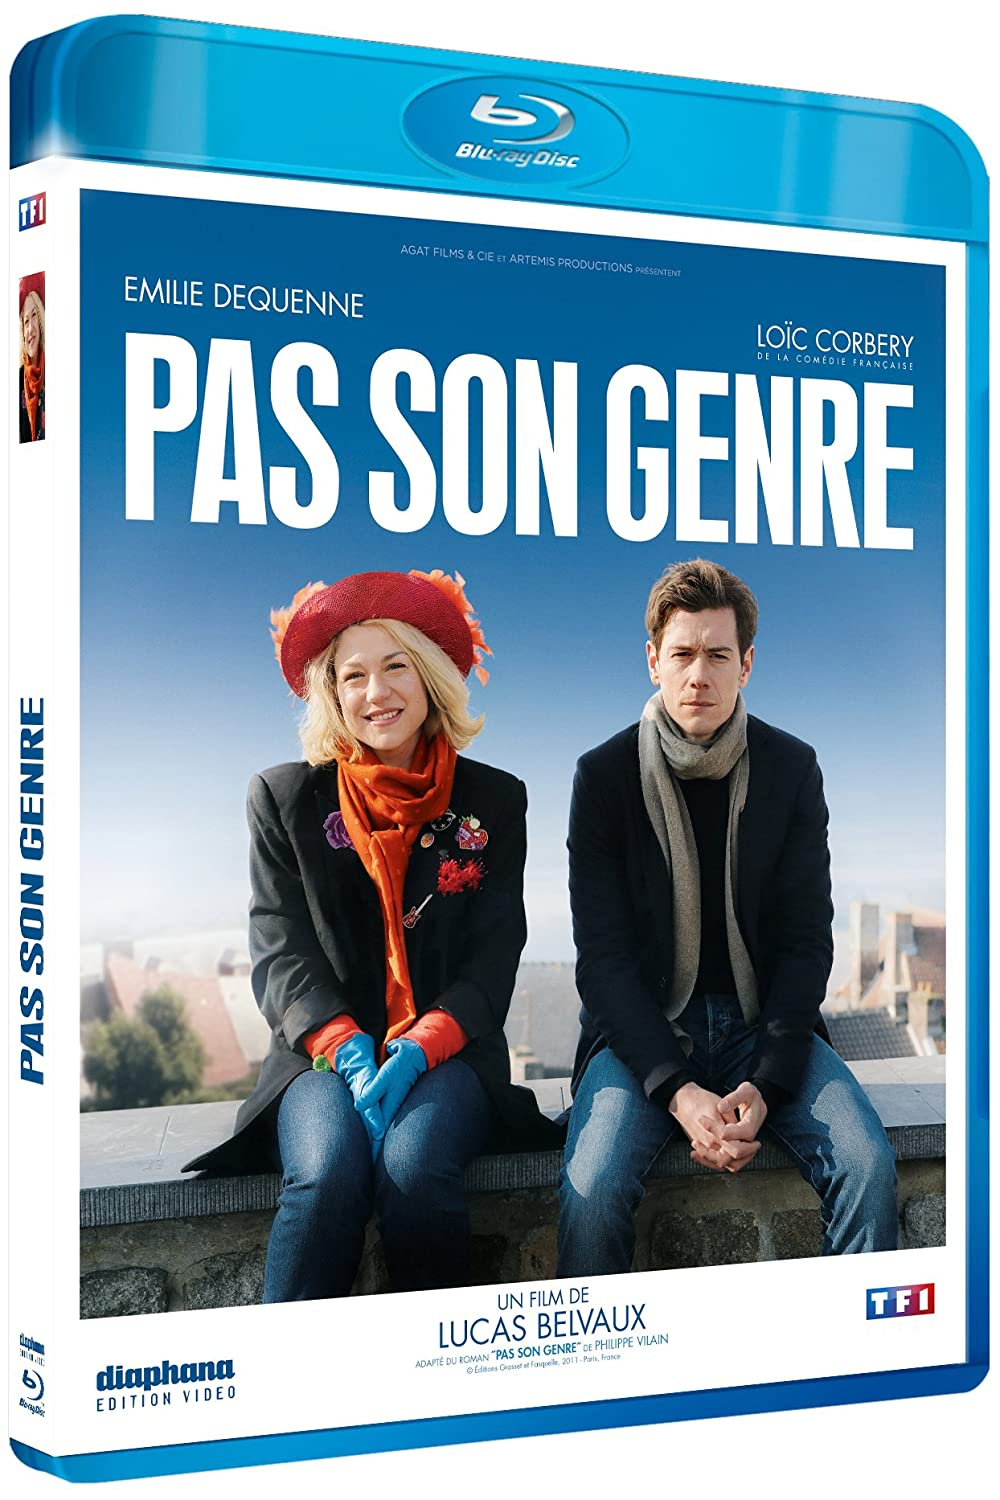 Pas son genre (2014) [BLURAY 1080p]